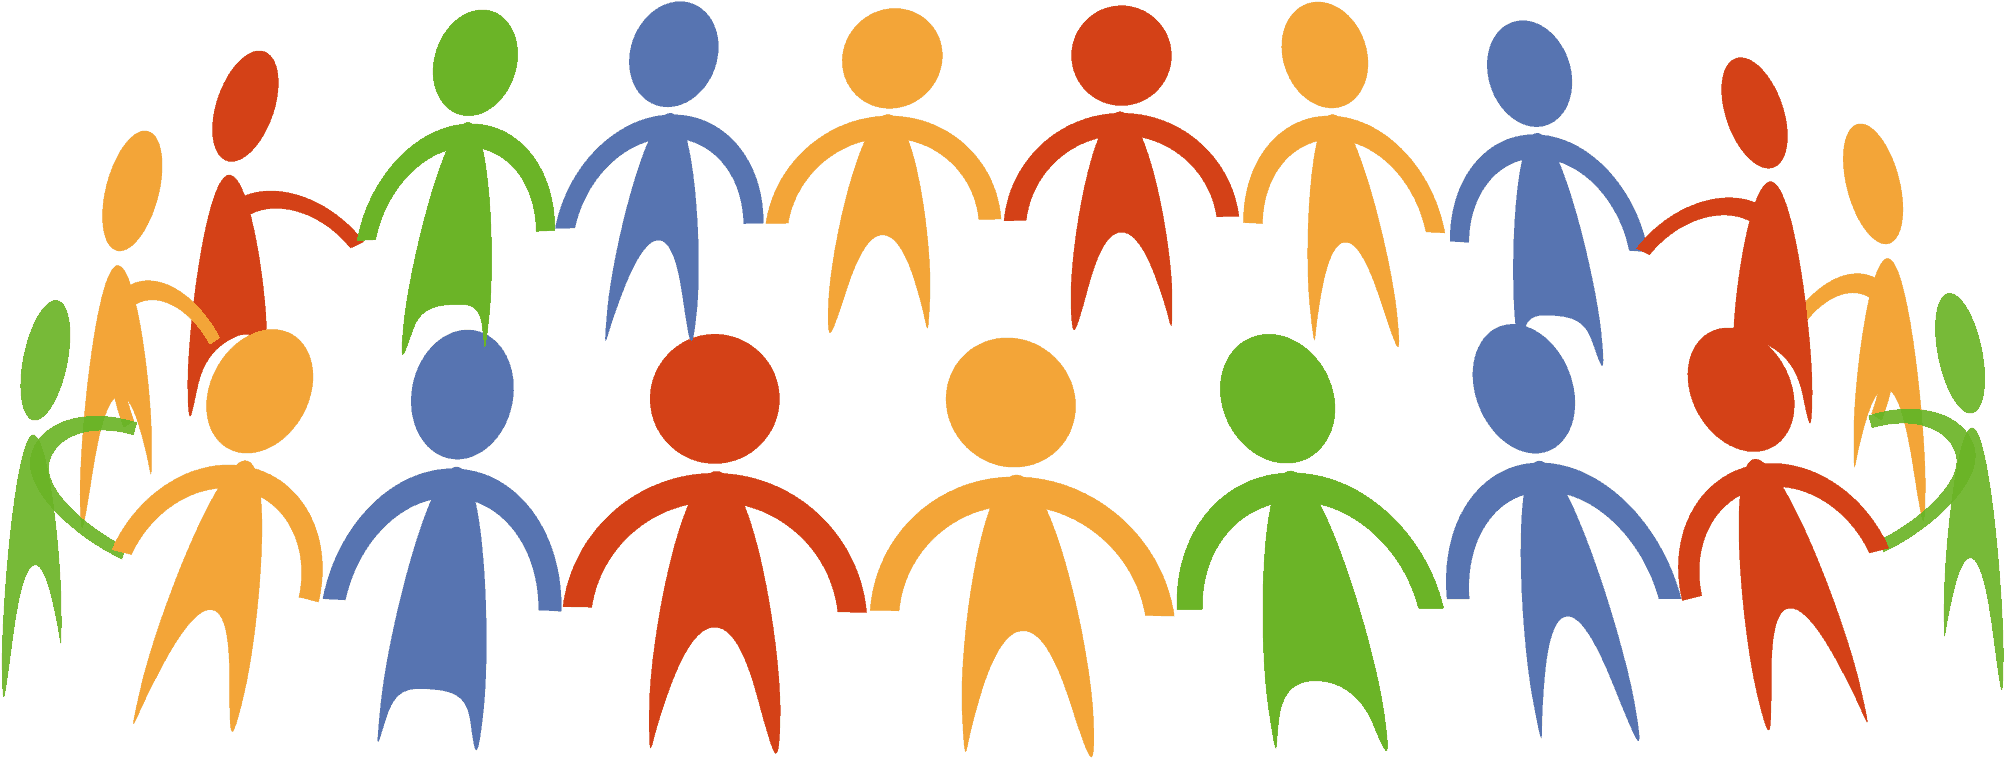 Abstract drawing of a large group of people in a circle holding hands.